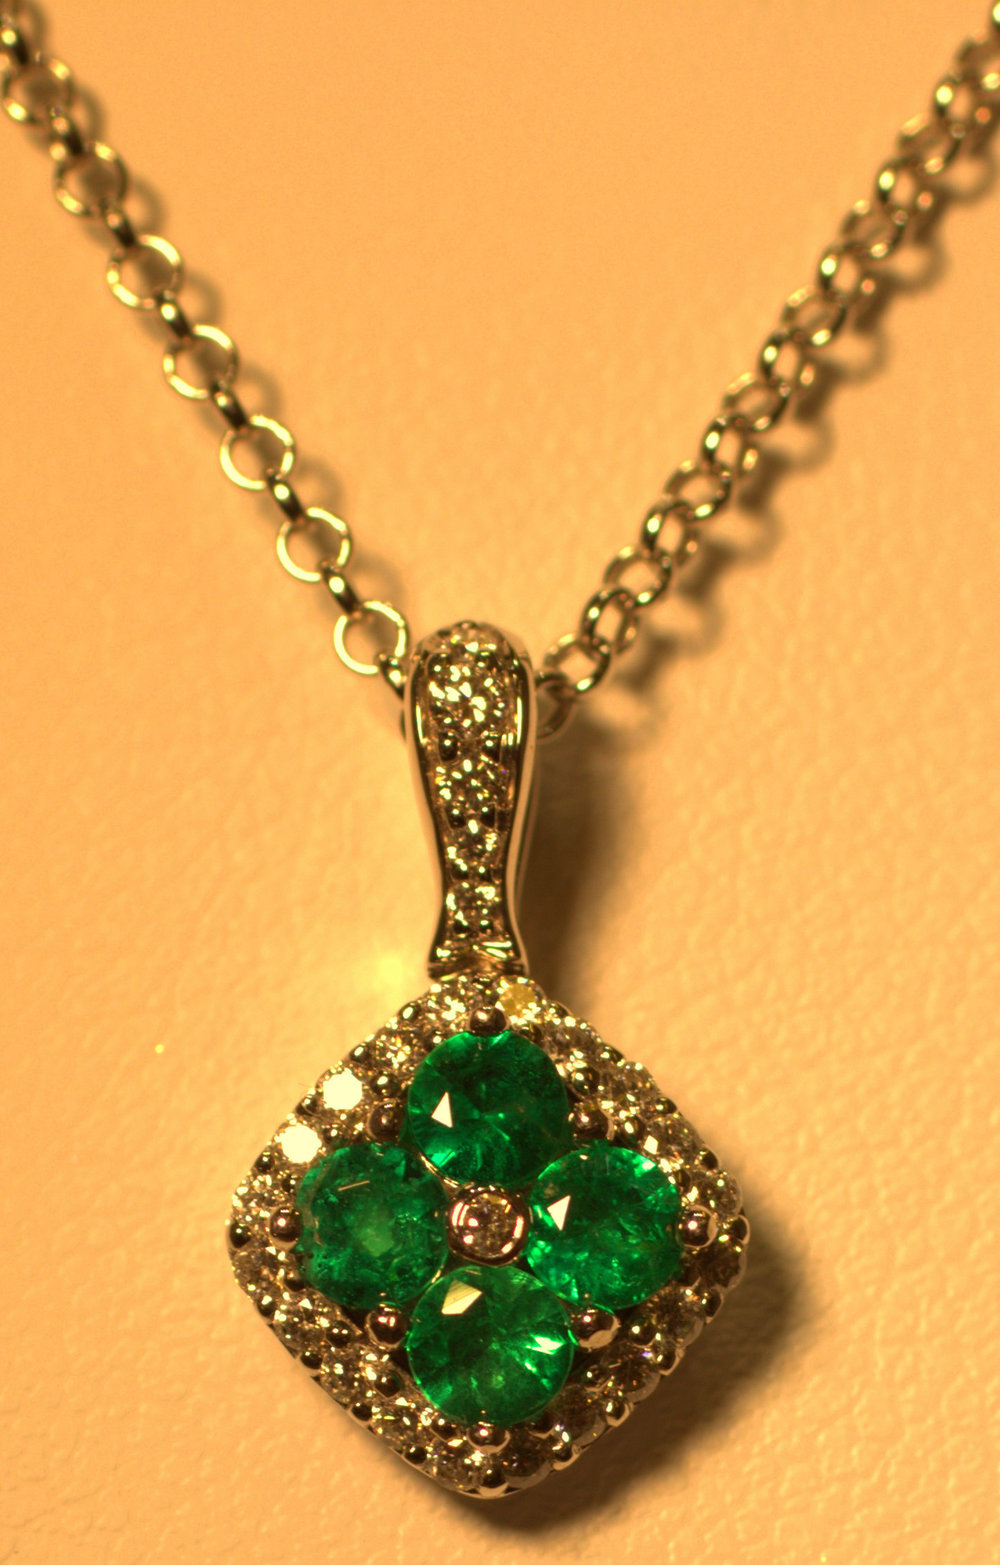 Beautiful green emerald and diamond cluster pendant. Pave diamond set bail. Diamond halo around 4 gorgeous columbian emeralds. The vibrant green color truly sparkles. $1800